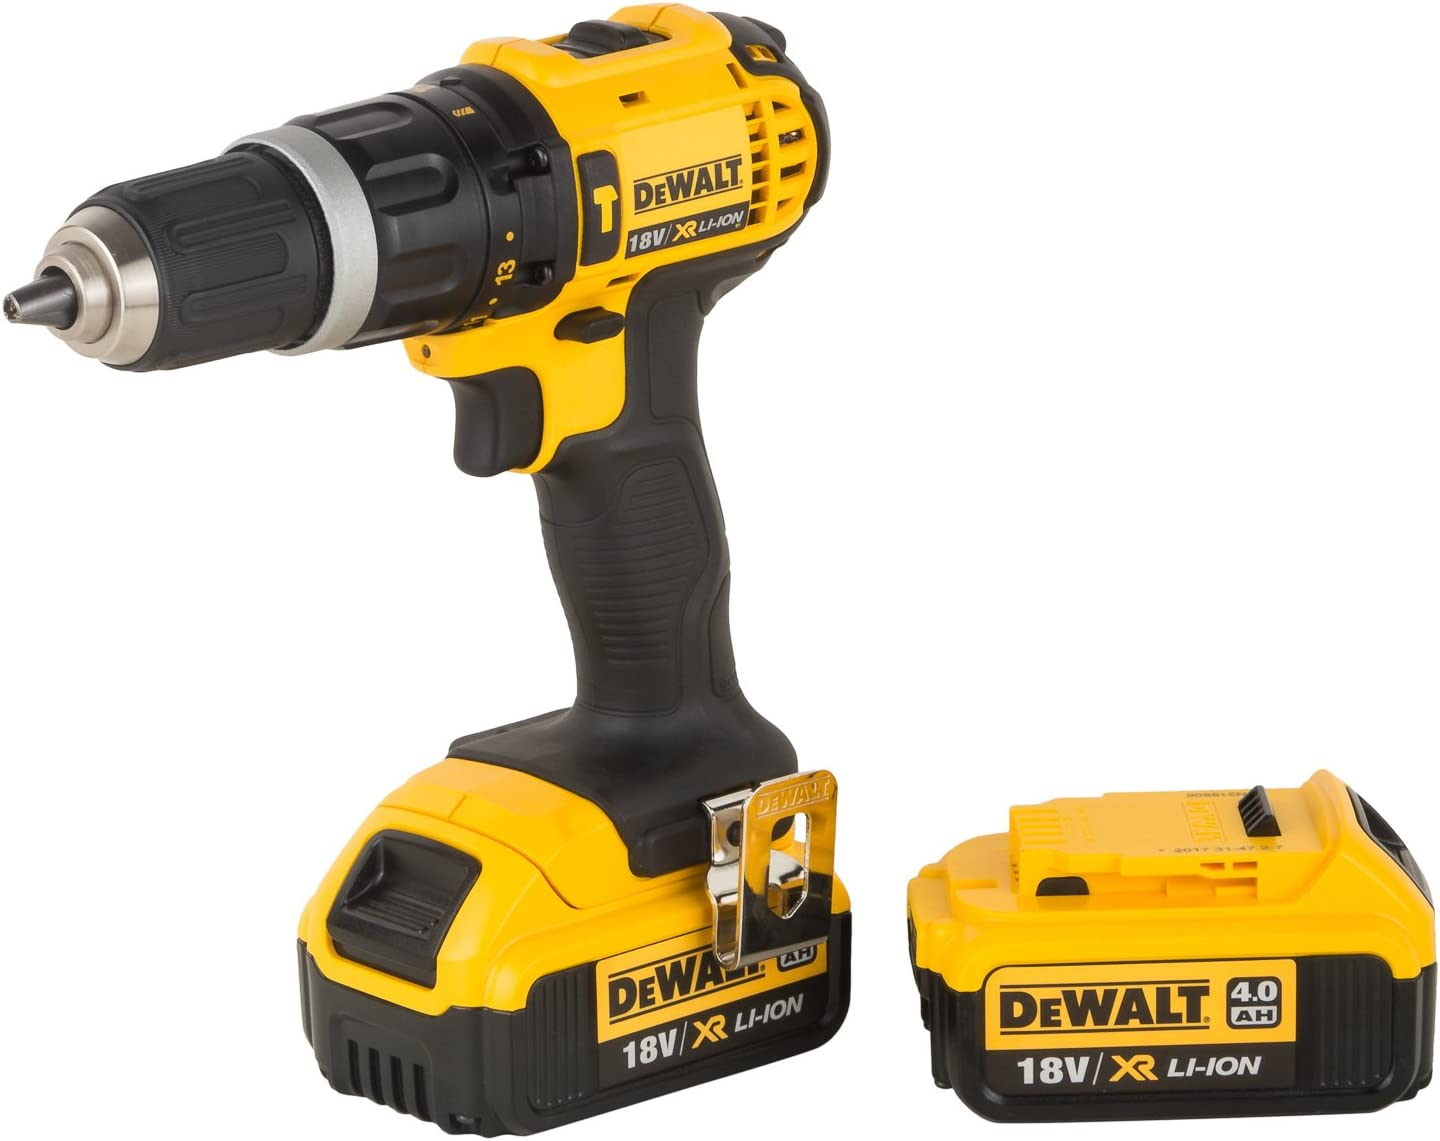 DeWalt DCD785M2-QW Perceuse-visseuse à percussion 18 V